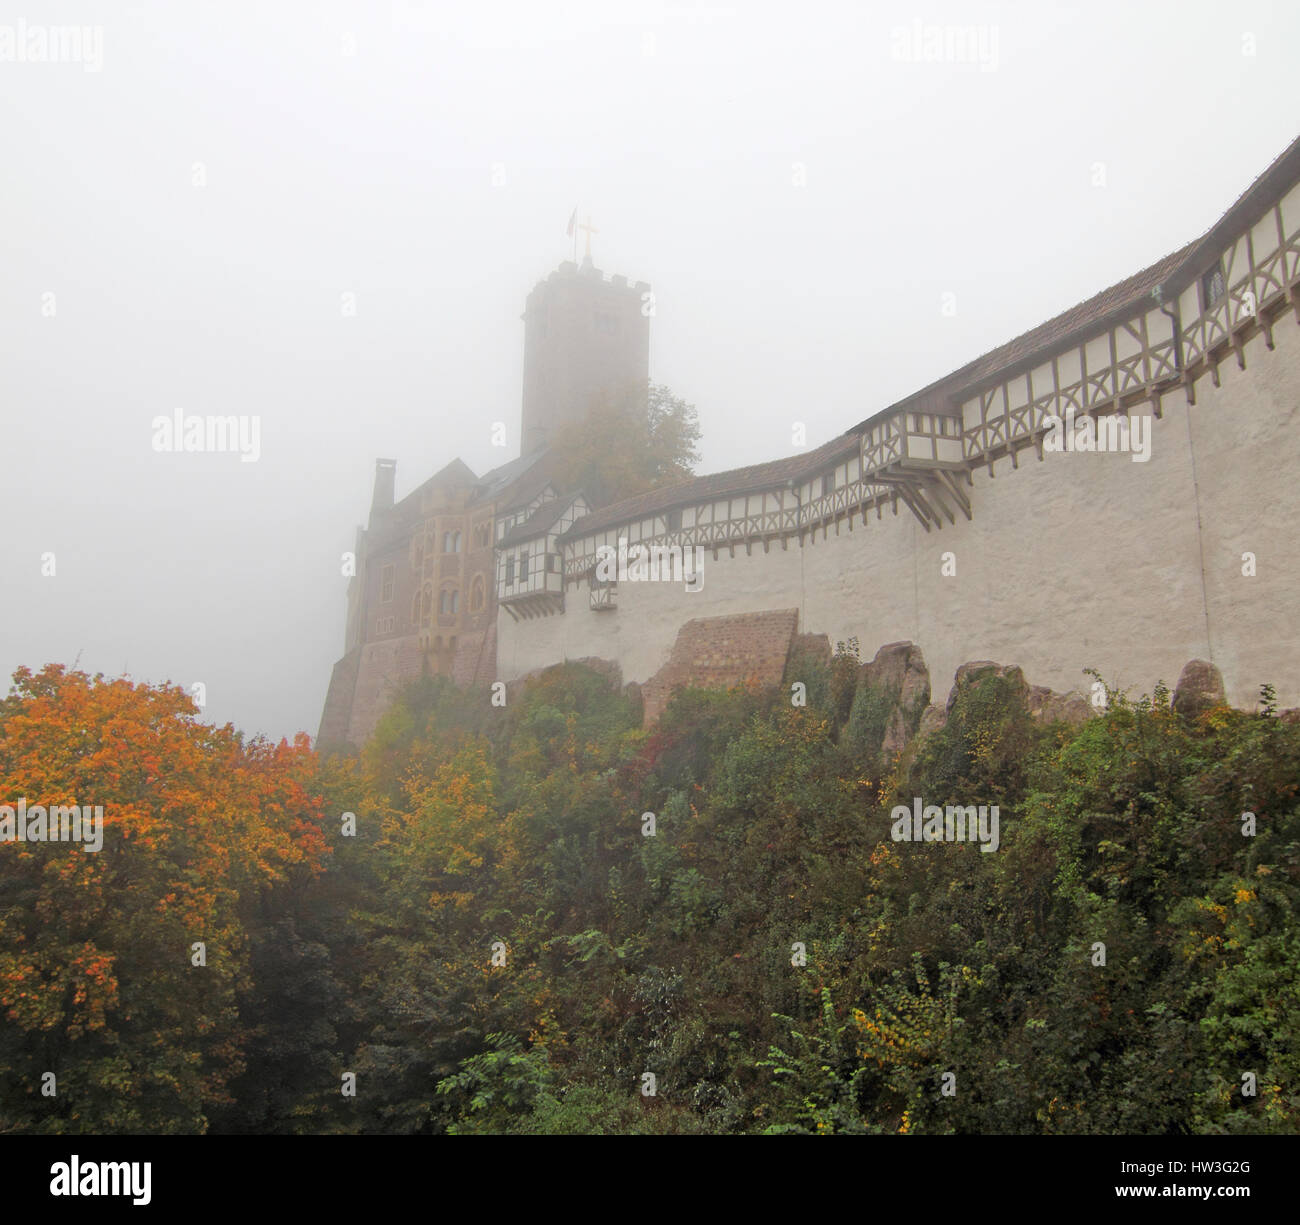 Wartburg im Nebel;  Wartburg Castle in autumn  mist:  During his exile on this castle (May 1521 to March 1522) Martin - Stock Image